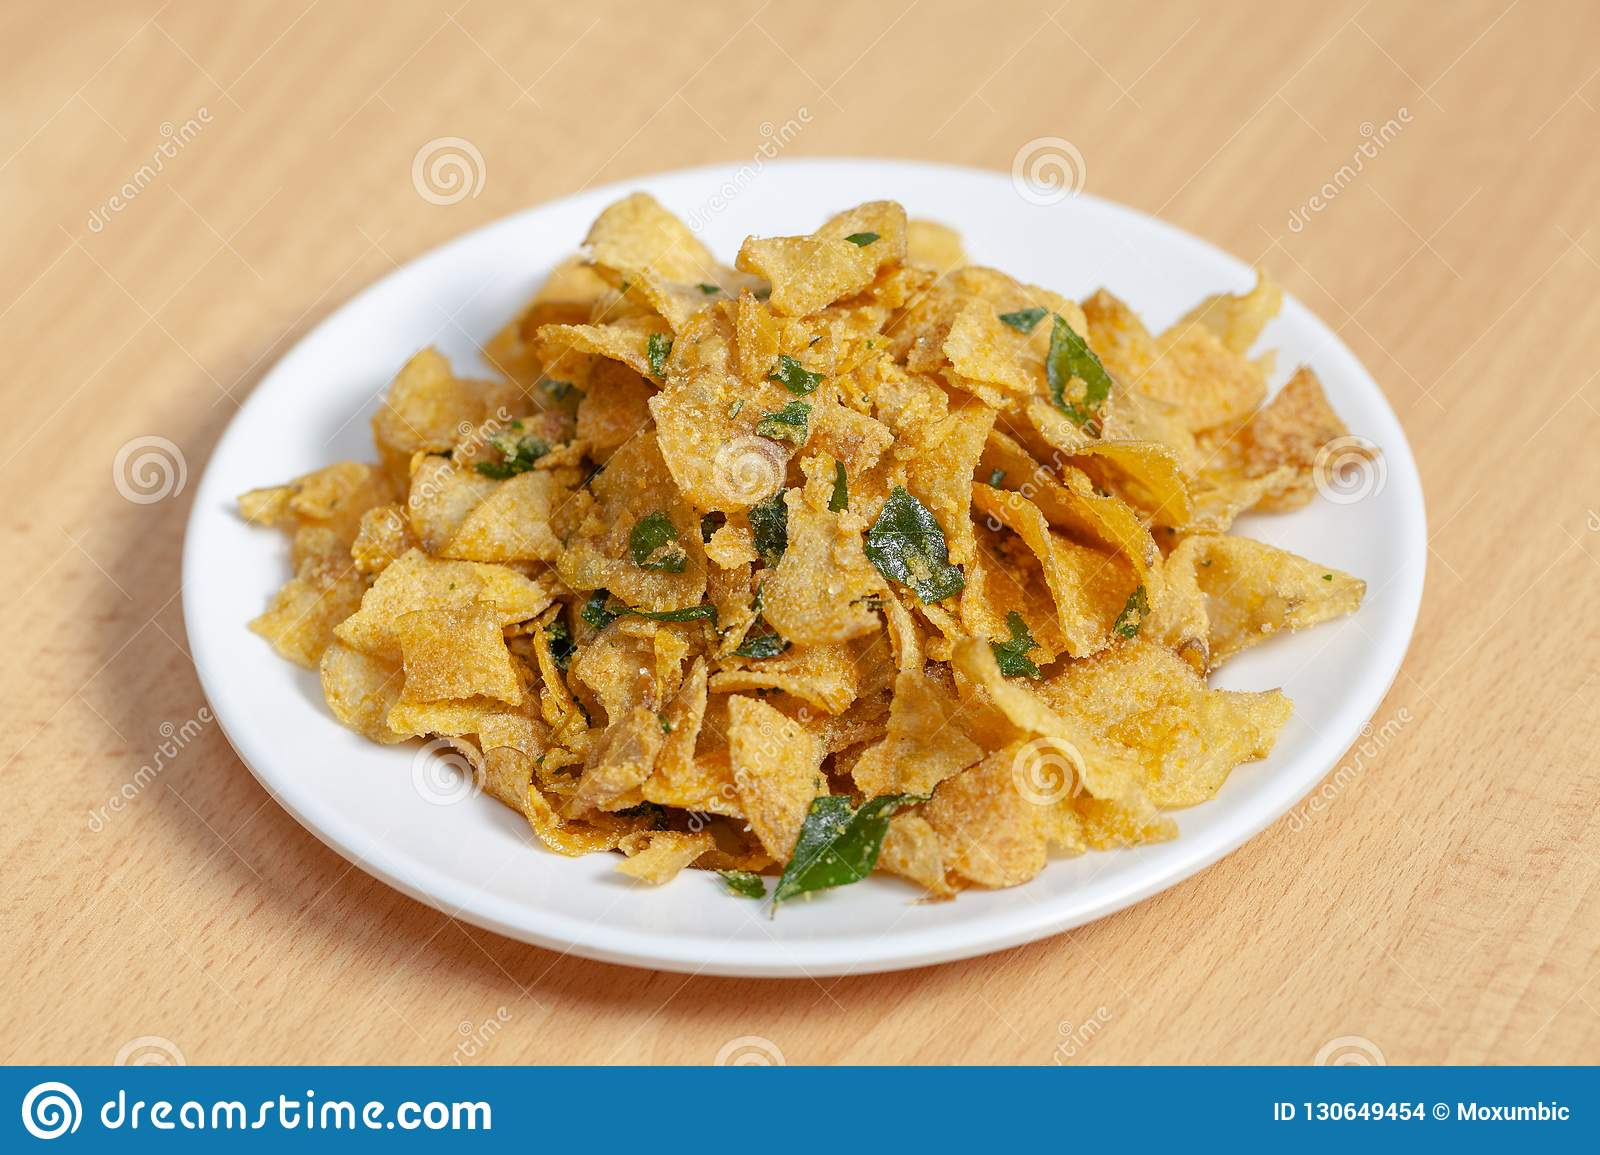 Salted Egg Potato Chips On Plate Stock Photo Image Of Fried Ingredient 130649454